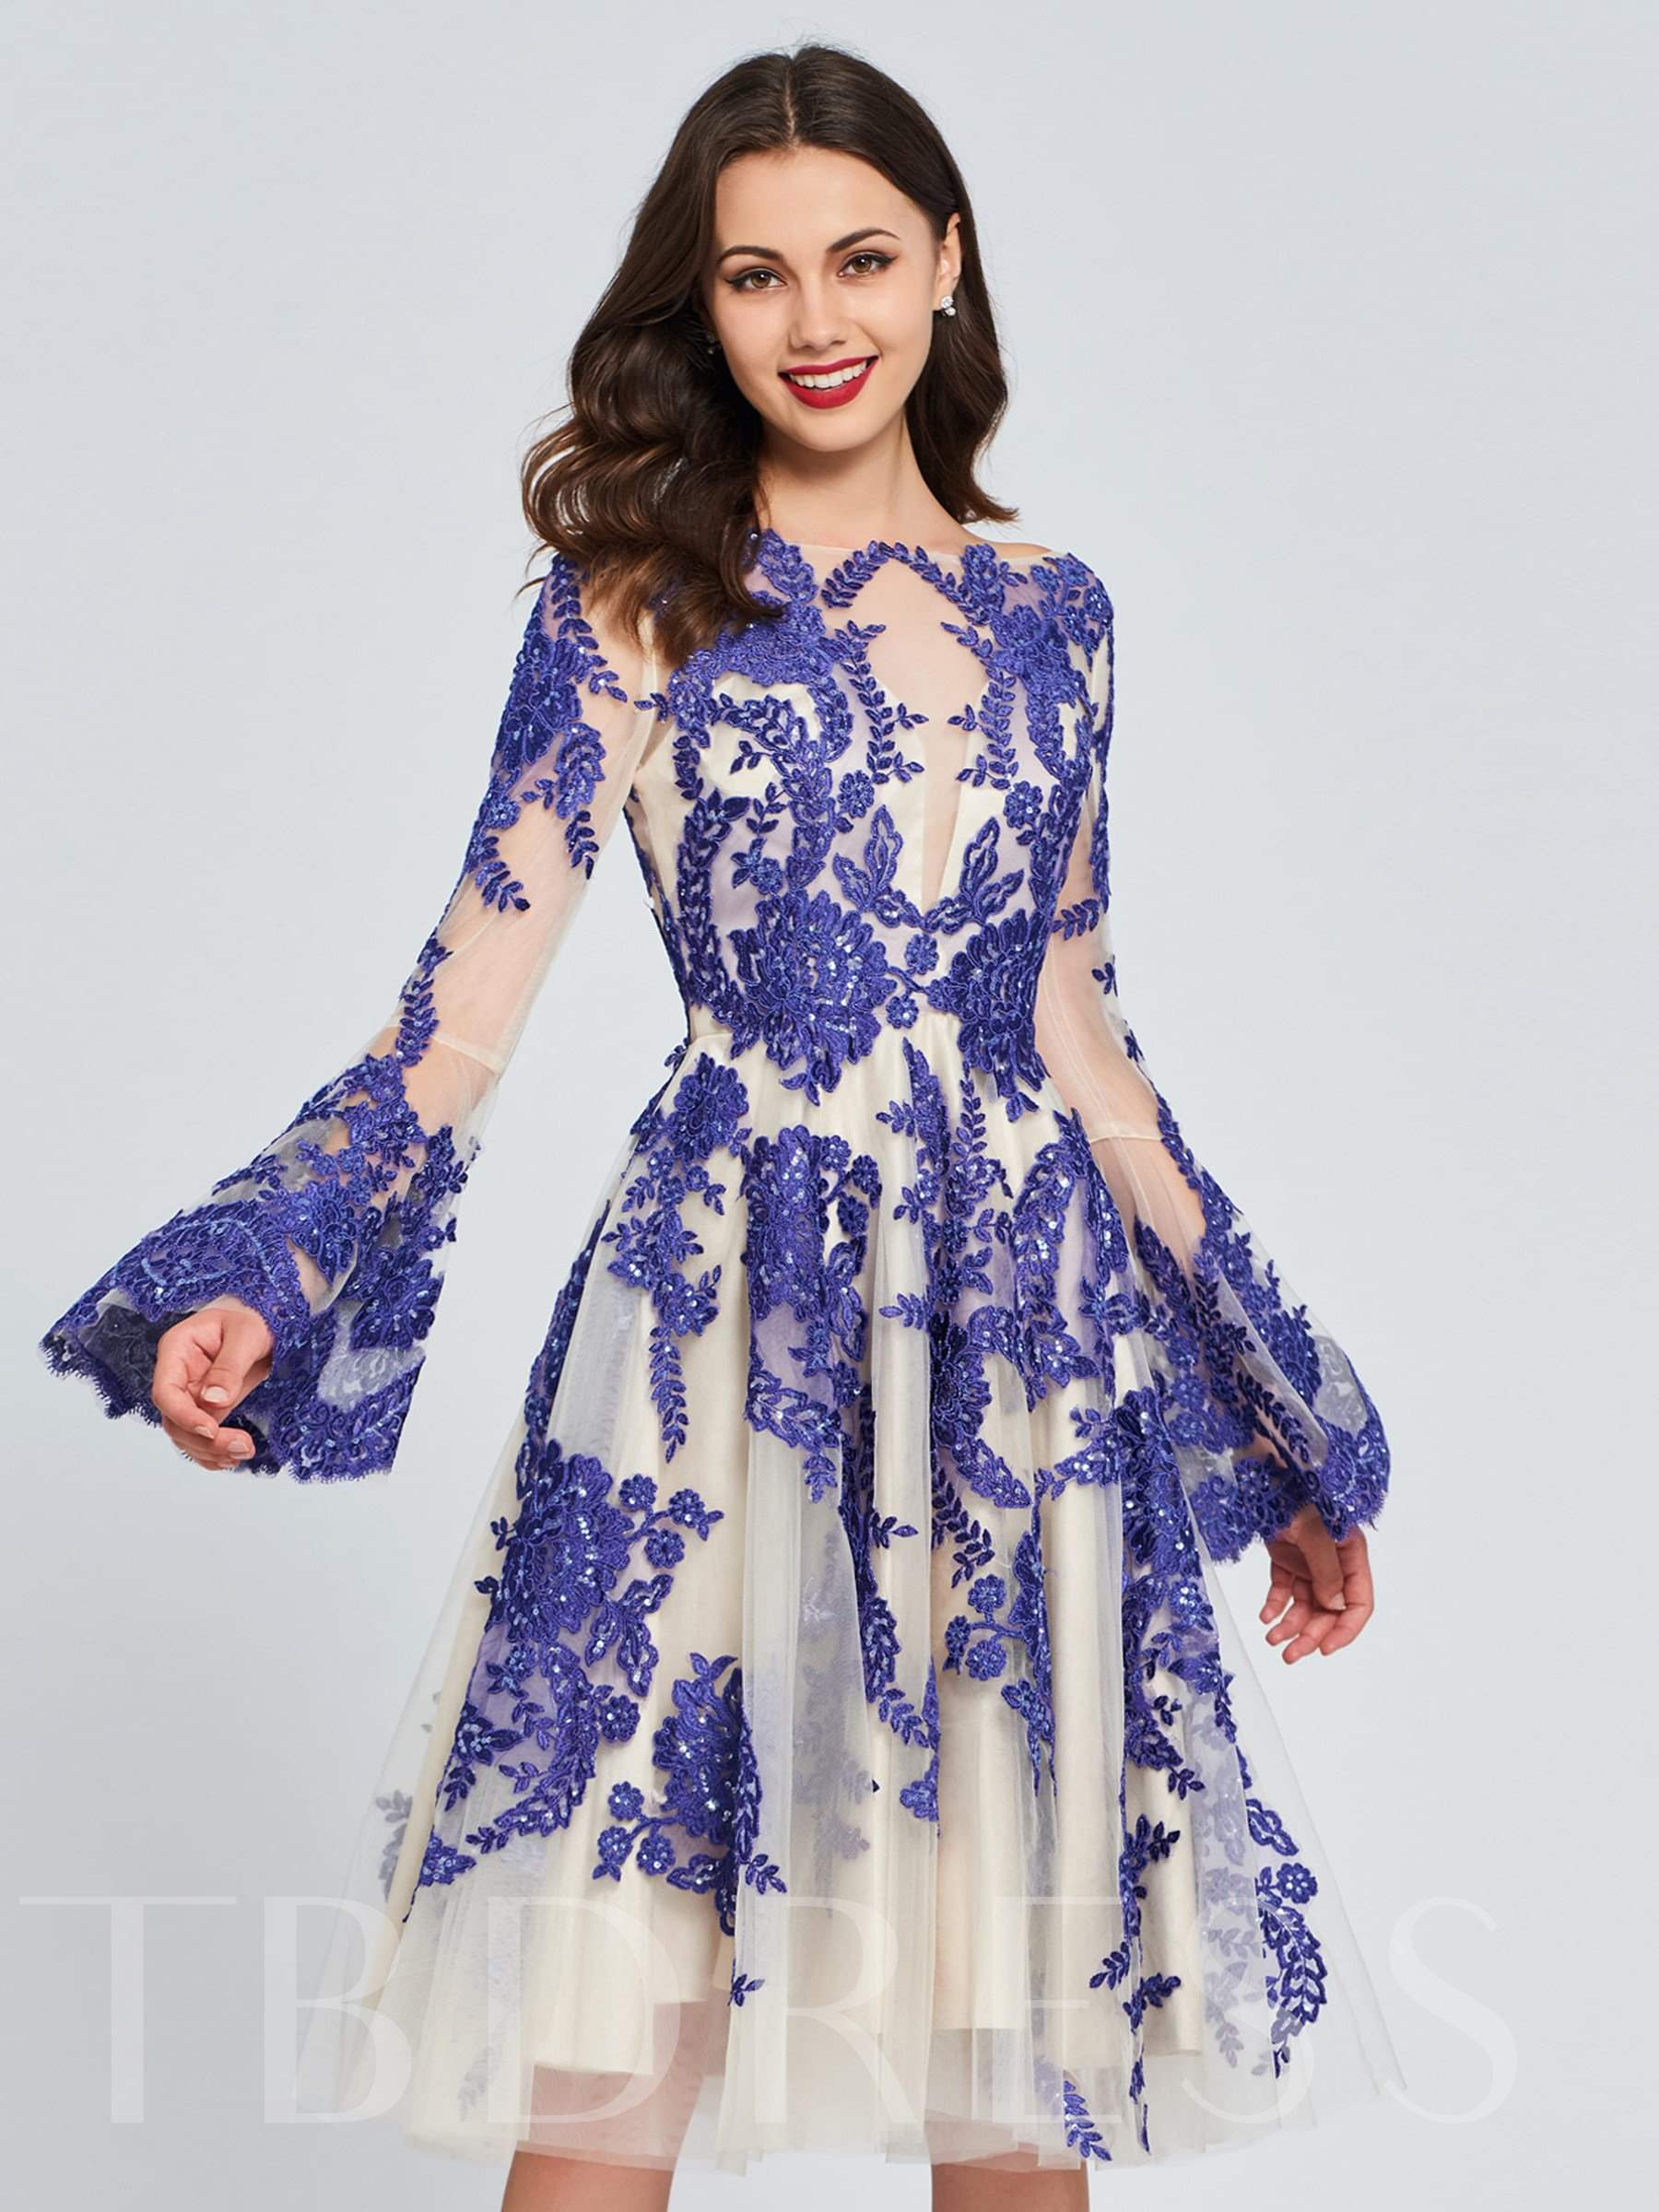 Buy A-Line Appliques Lace Ruffles Homecoming Dress, Spring,Summer,Fall,Winter, 13372952 for $161.12 in TBDress store